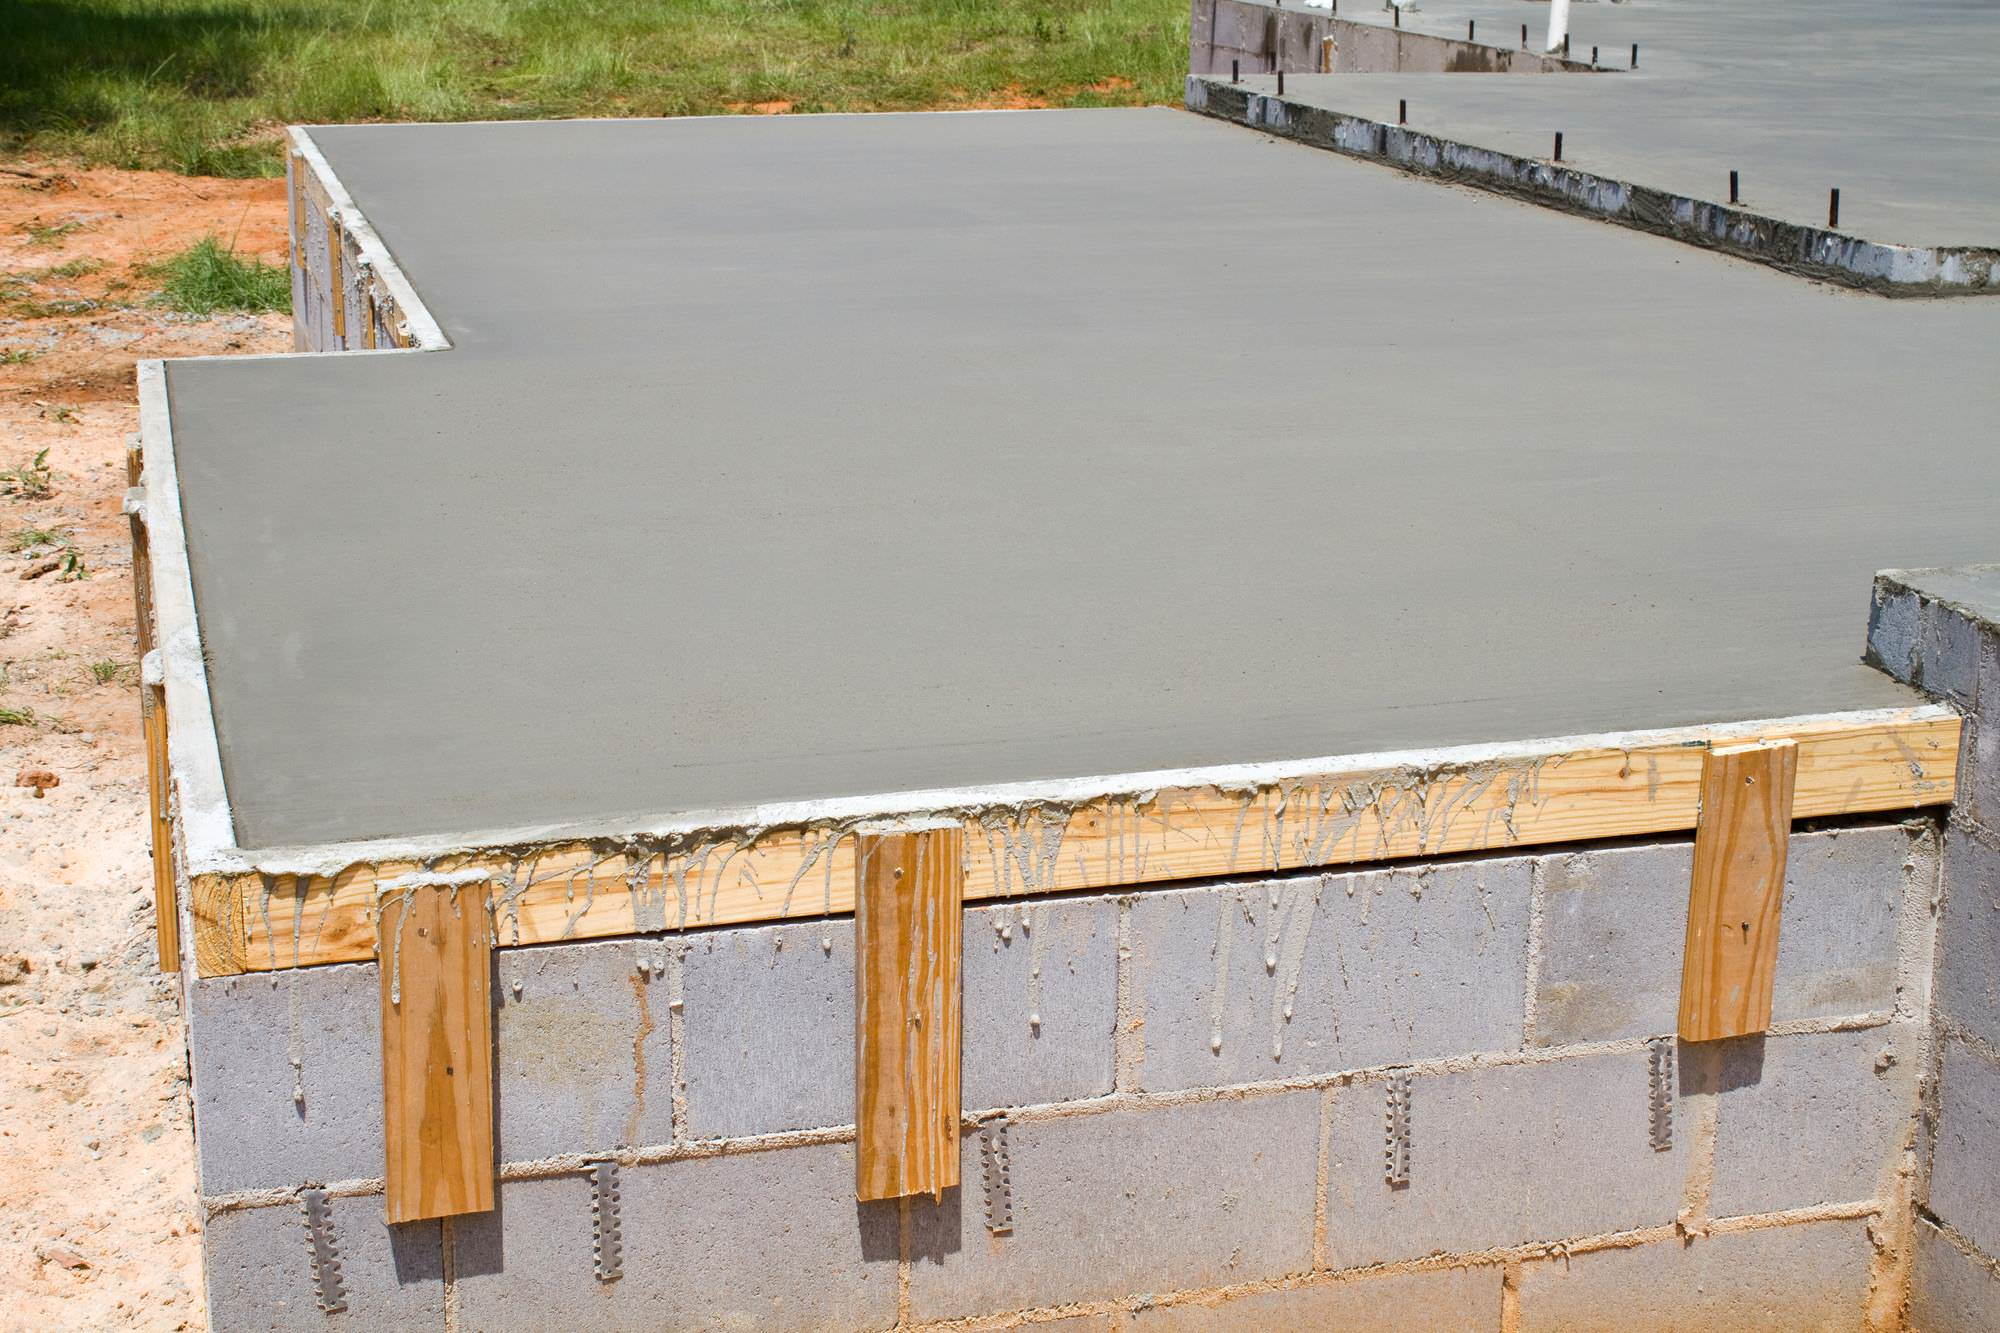 wet concrete slab drying